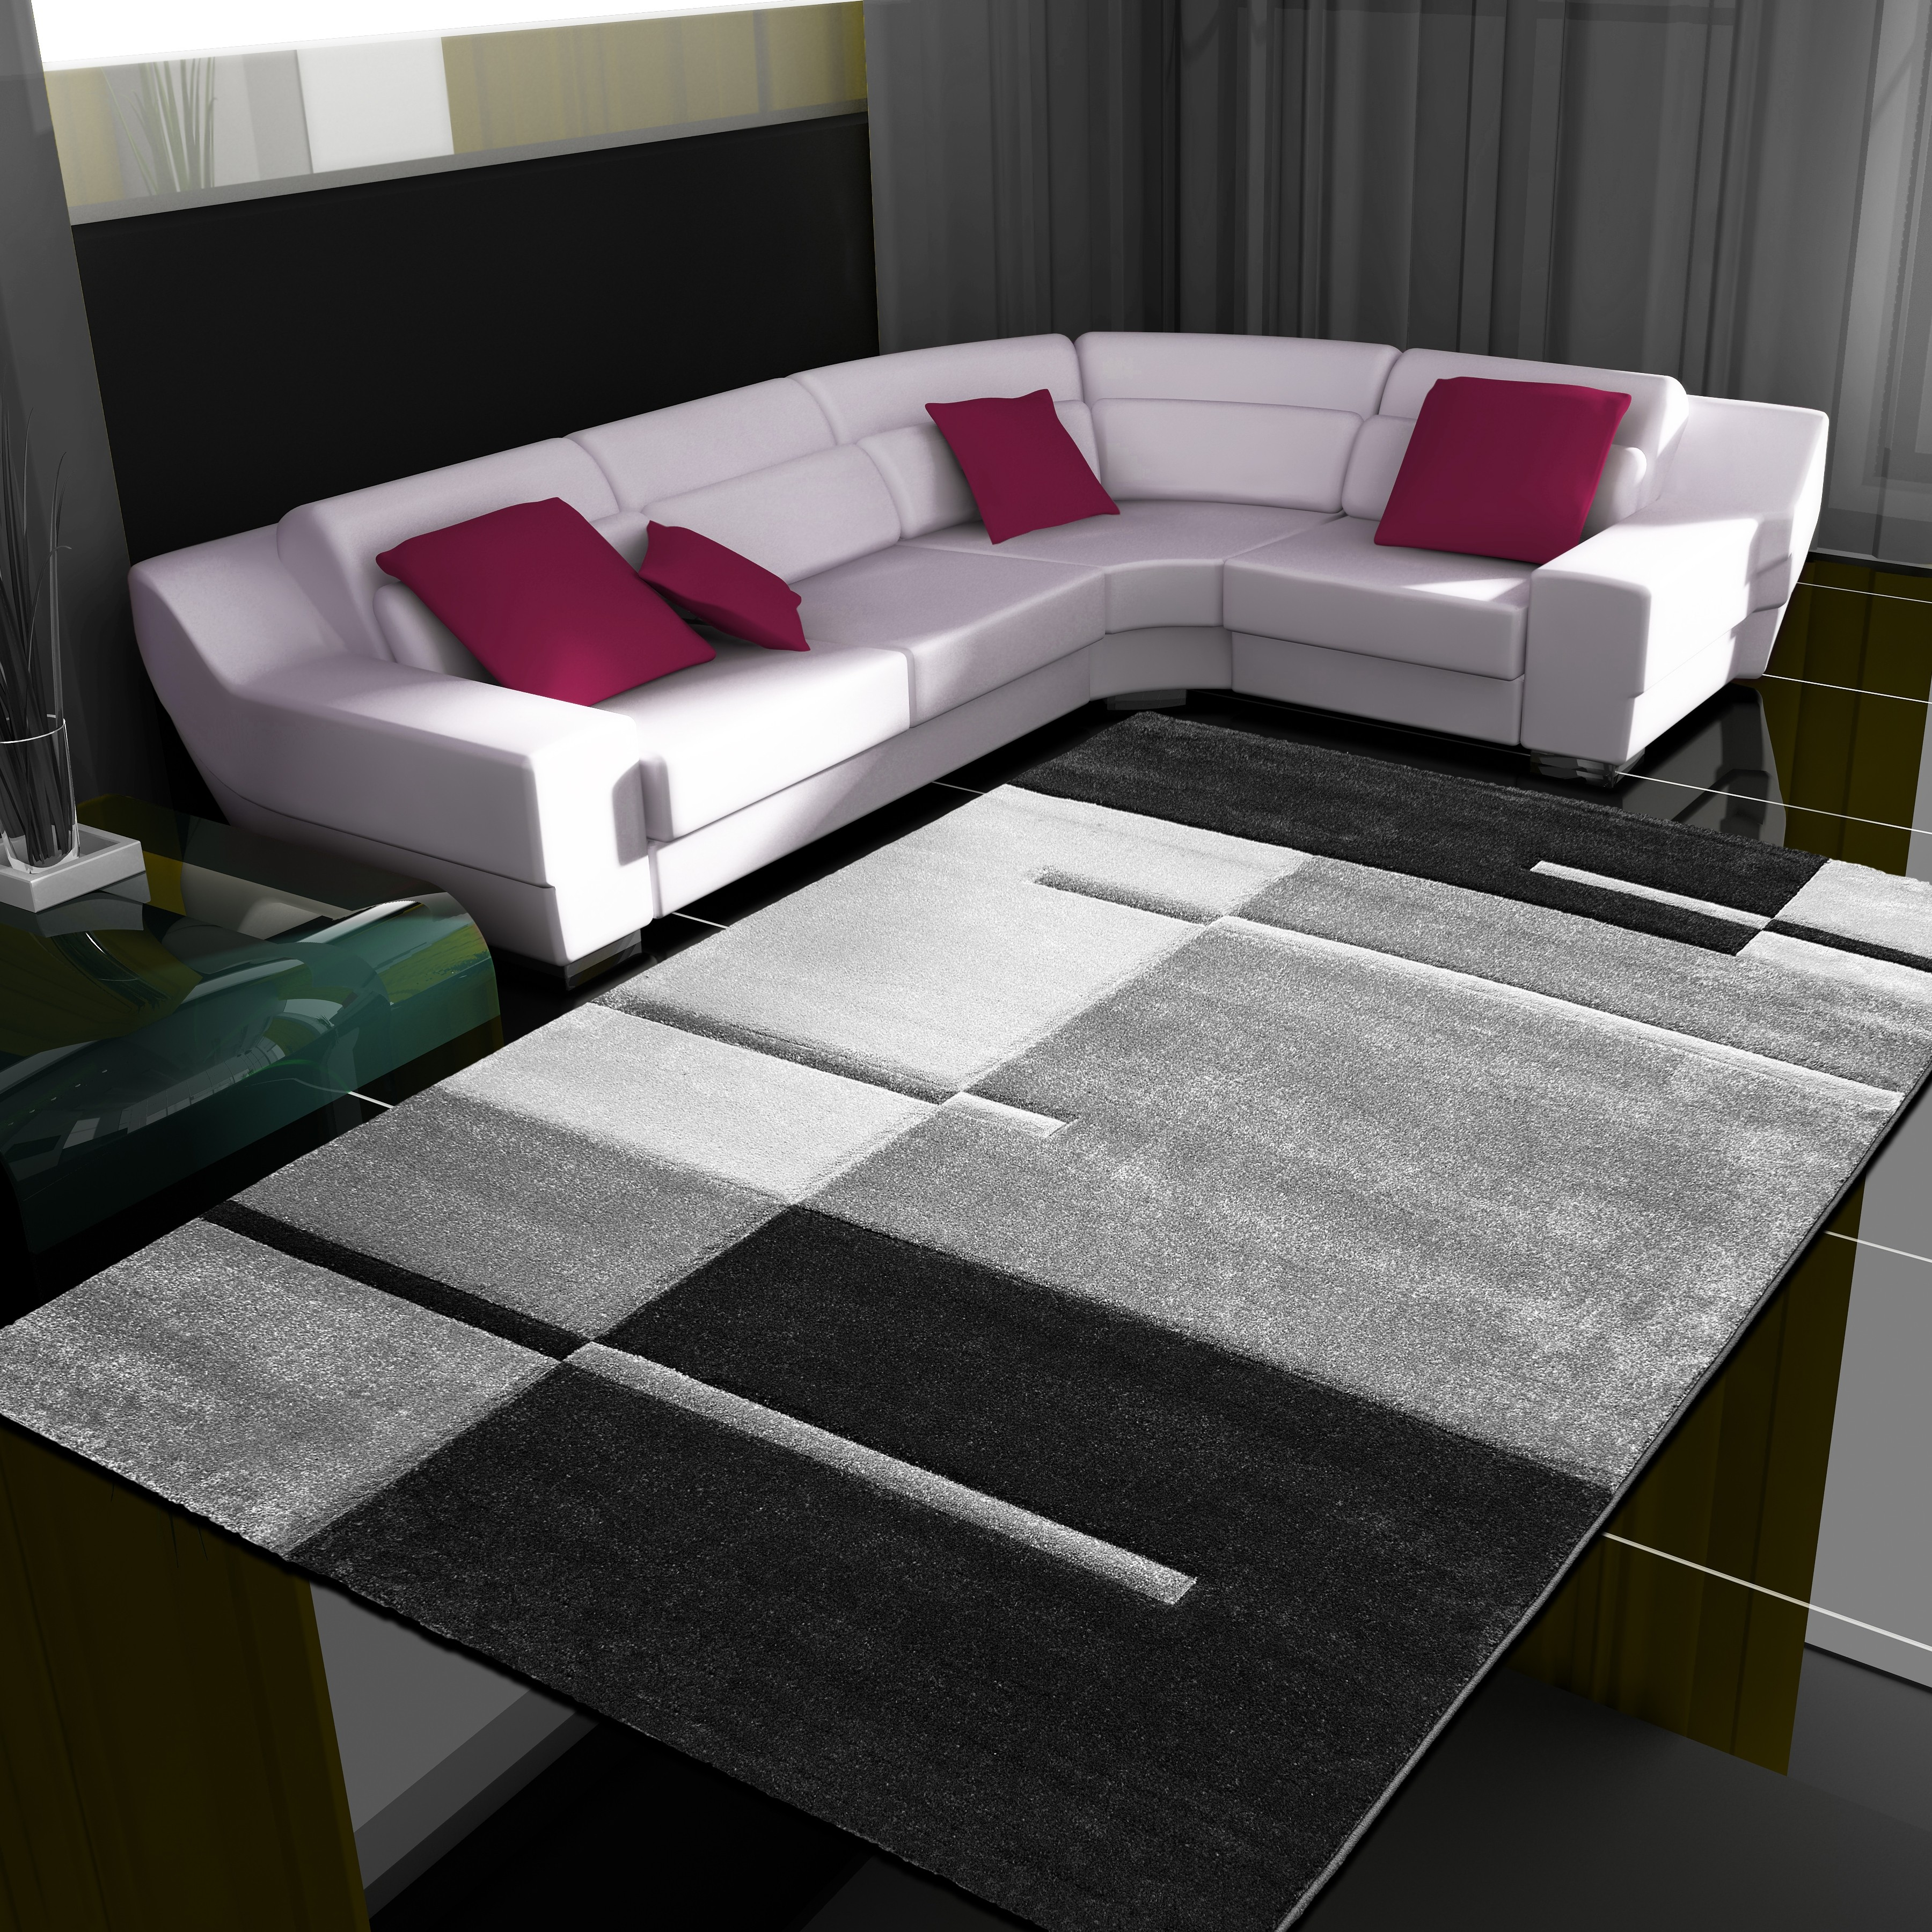 tapis fris e effet 3d design moderne harlequin. Black Bedroom Furniture Sets. Home Design Ideas